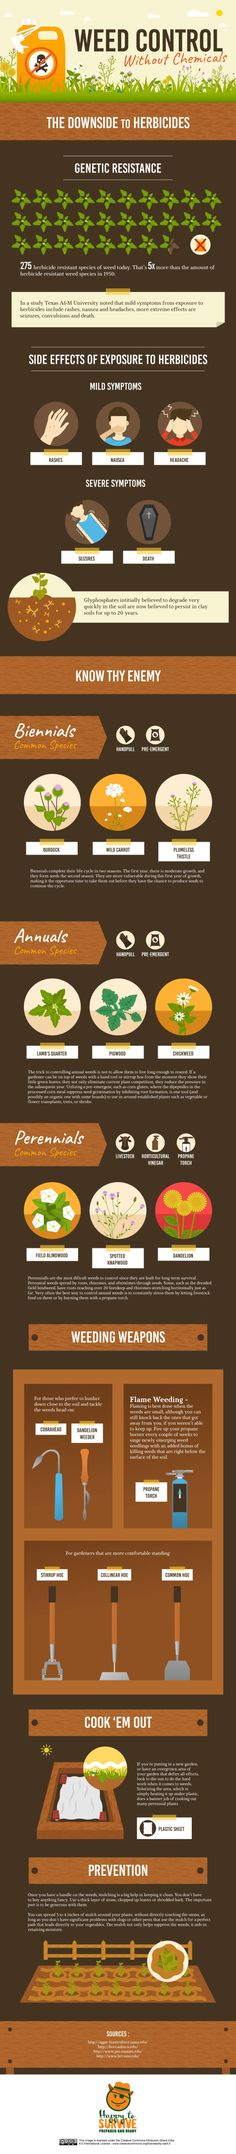 37 Best Weeds And How To Get Rid Of Them Organically Images On